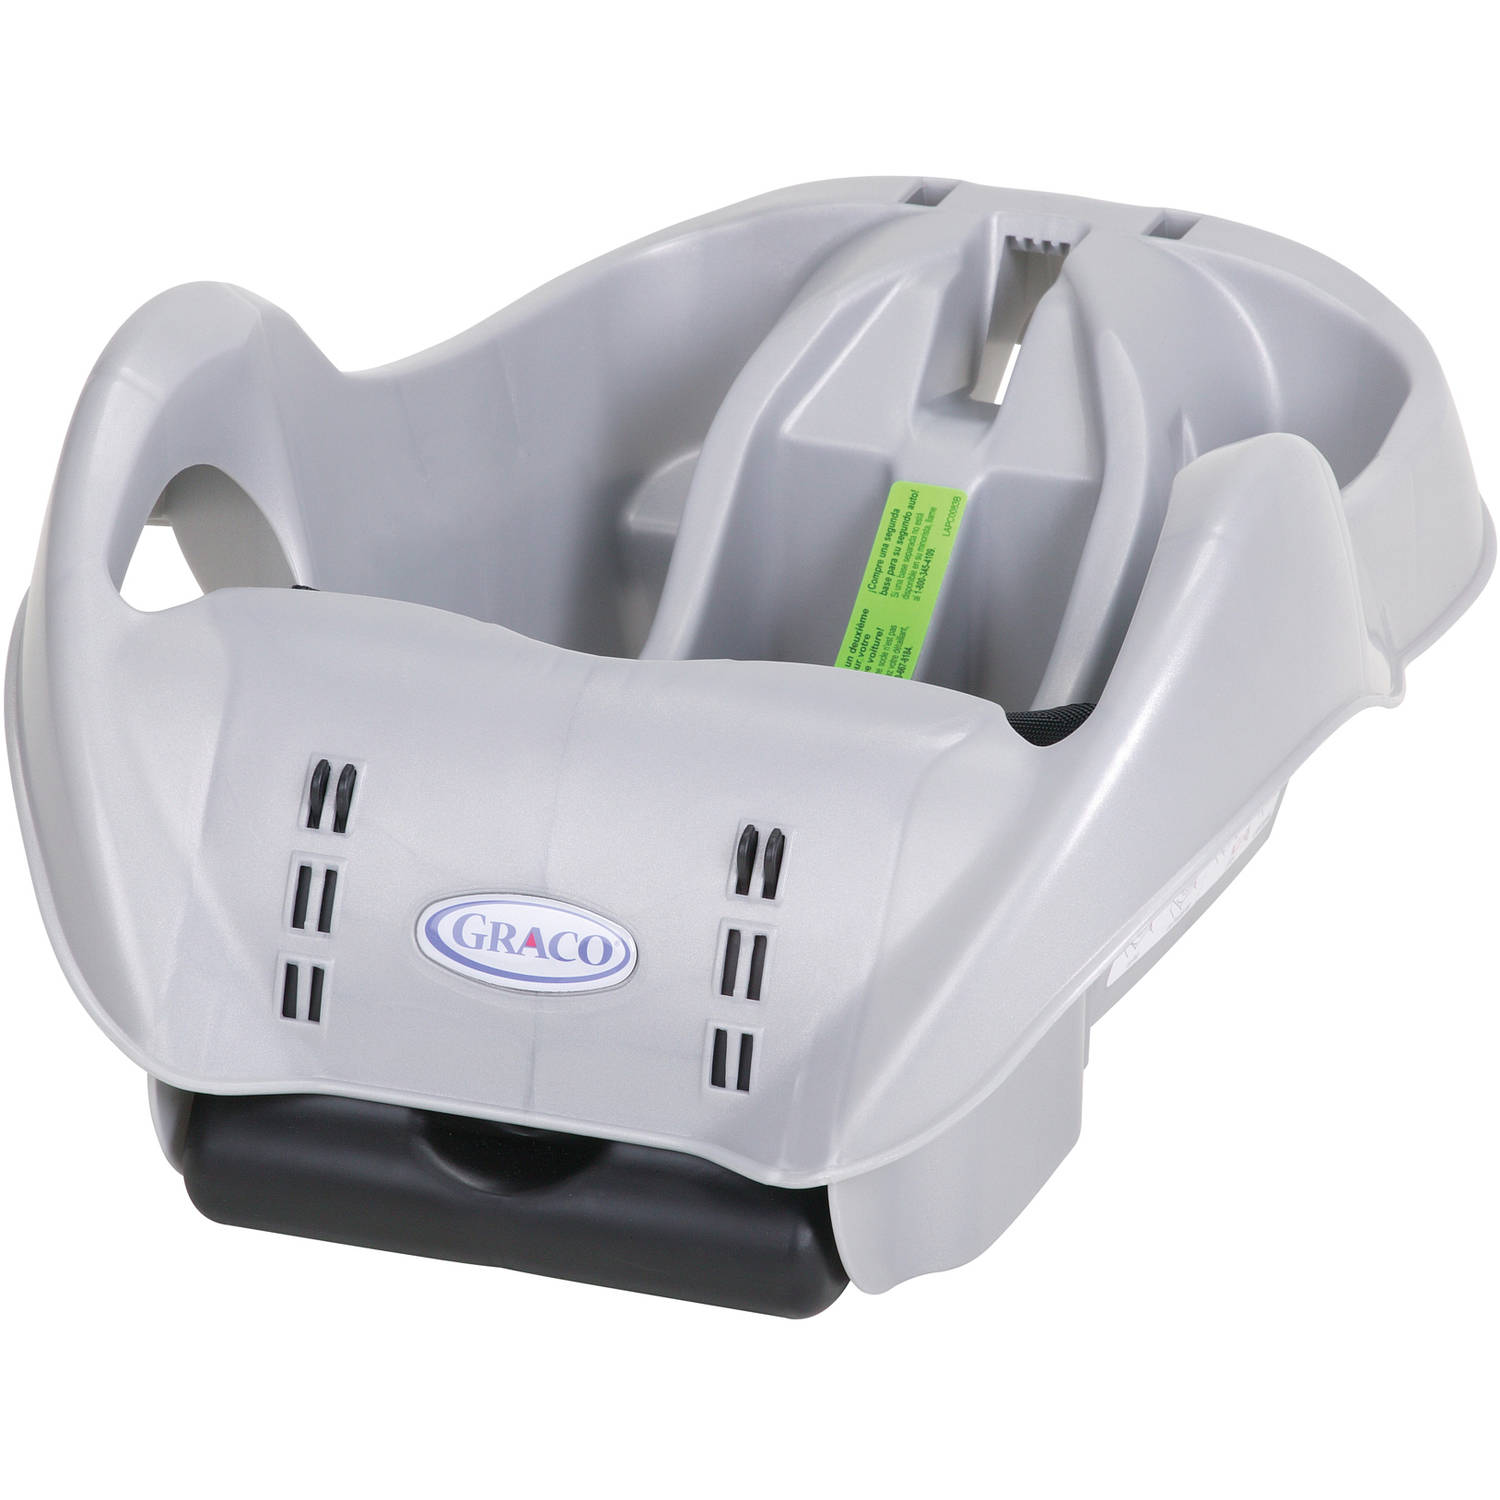 Graco SnugRide 22 Infant Car Seat Base - Silver